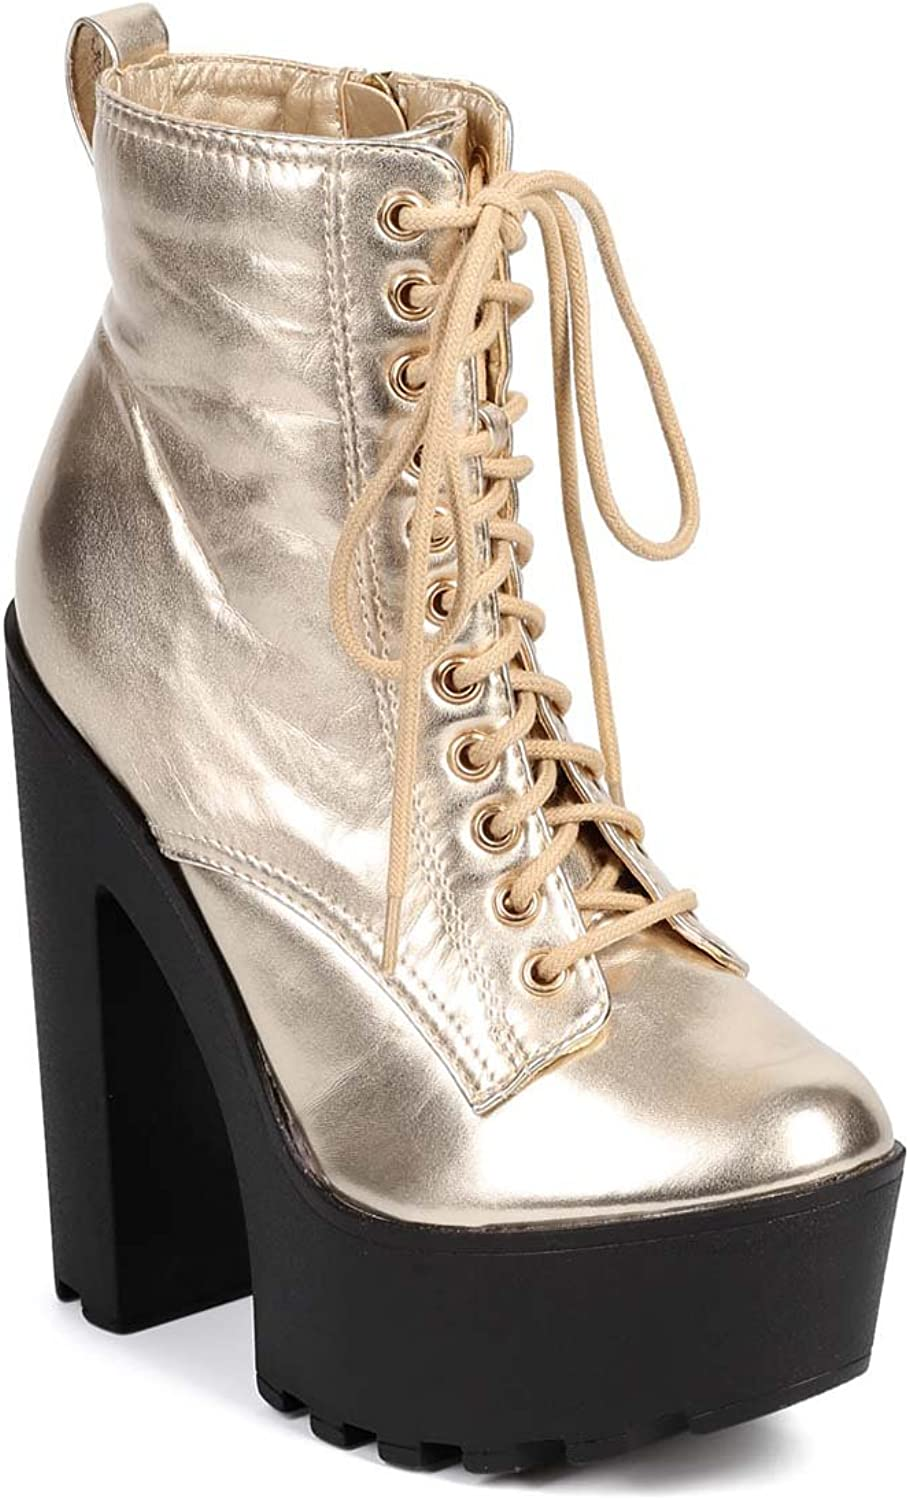 Fourever Funky Metallic gold Lace Up Lug Sole Platform Ankle Combat Boot